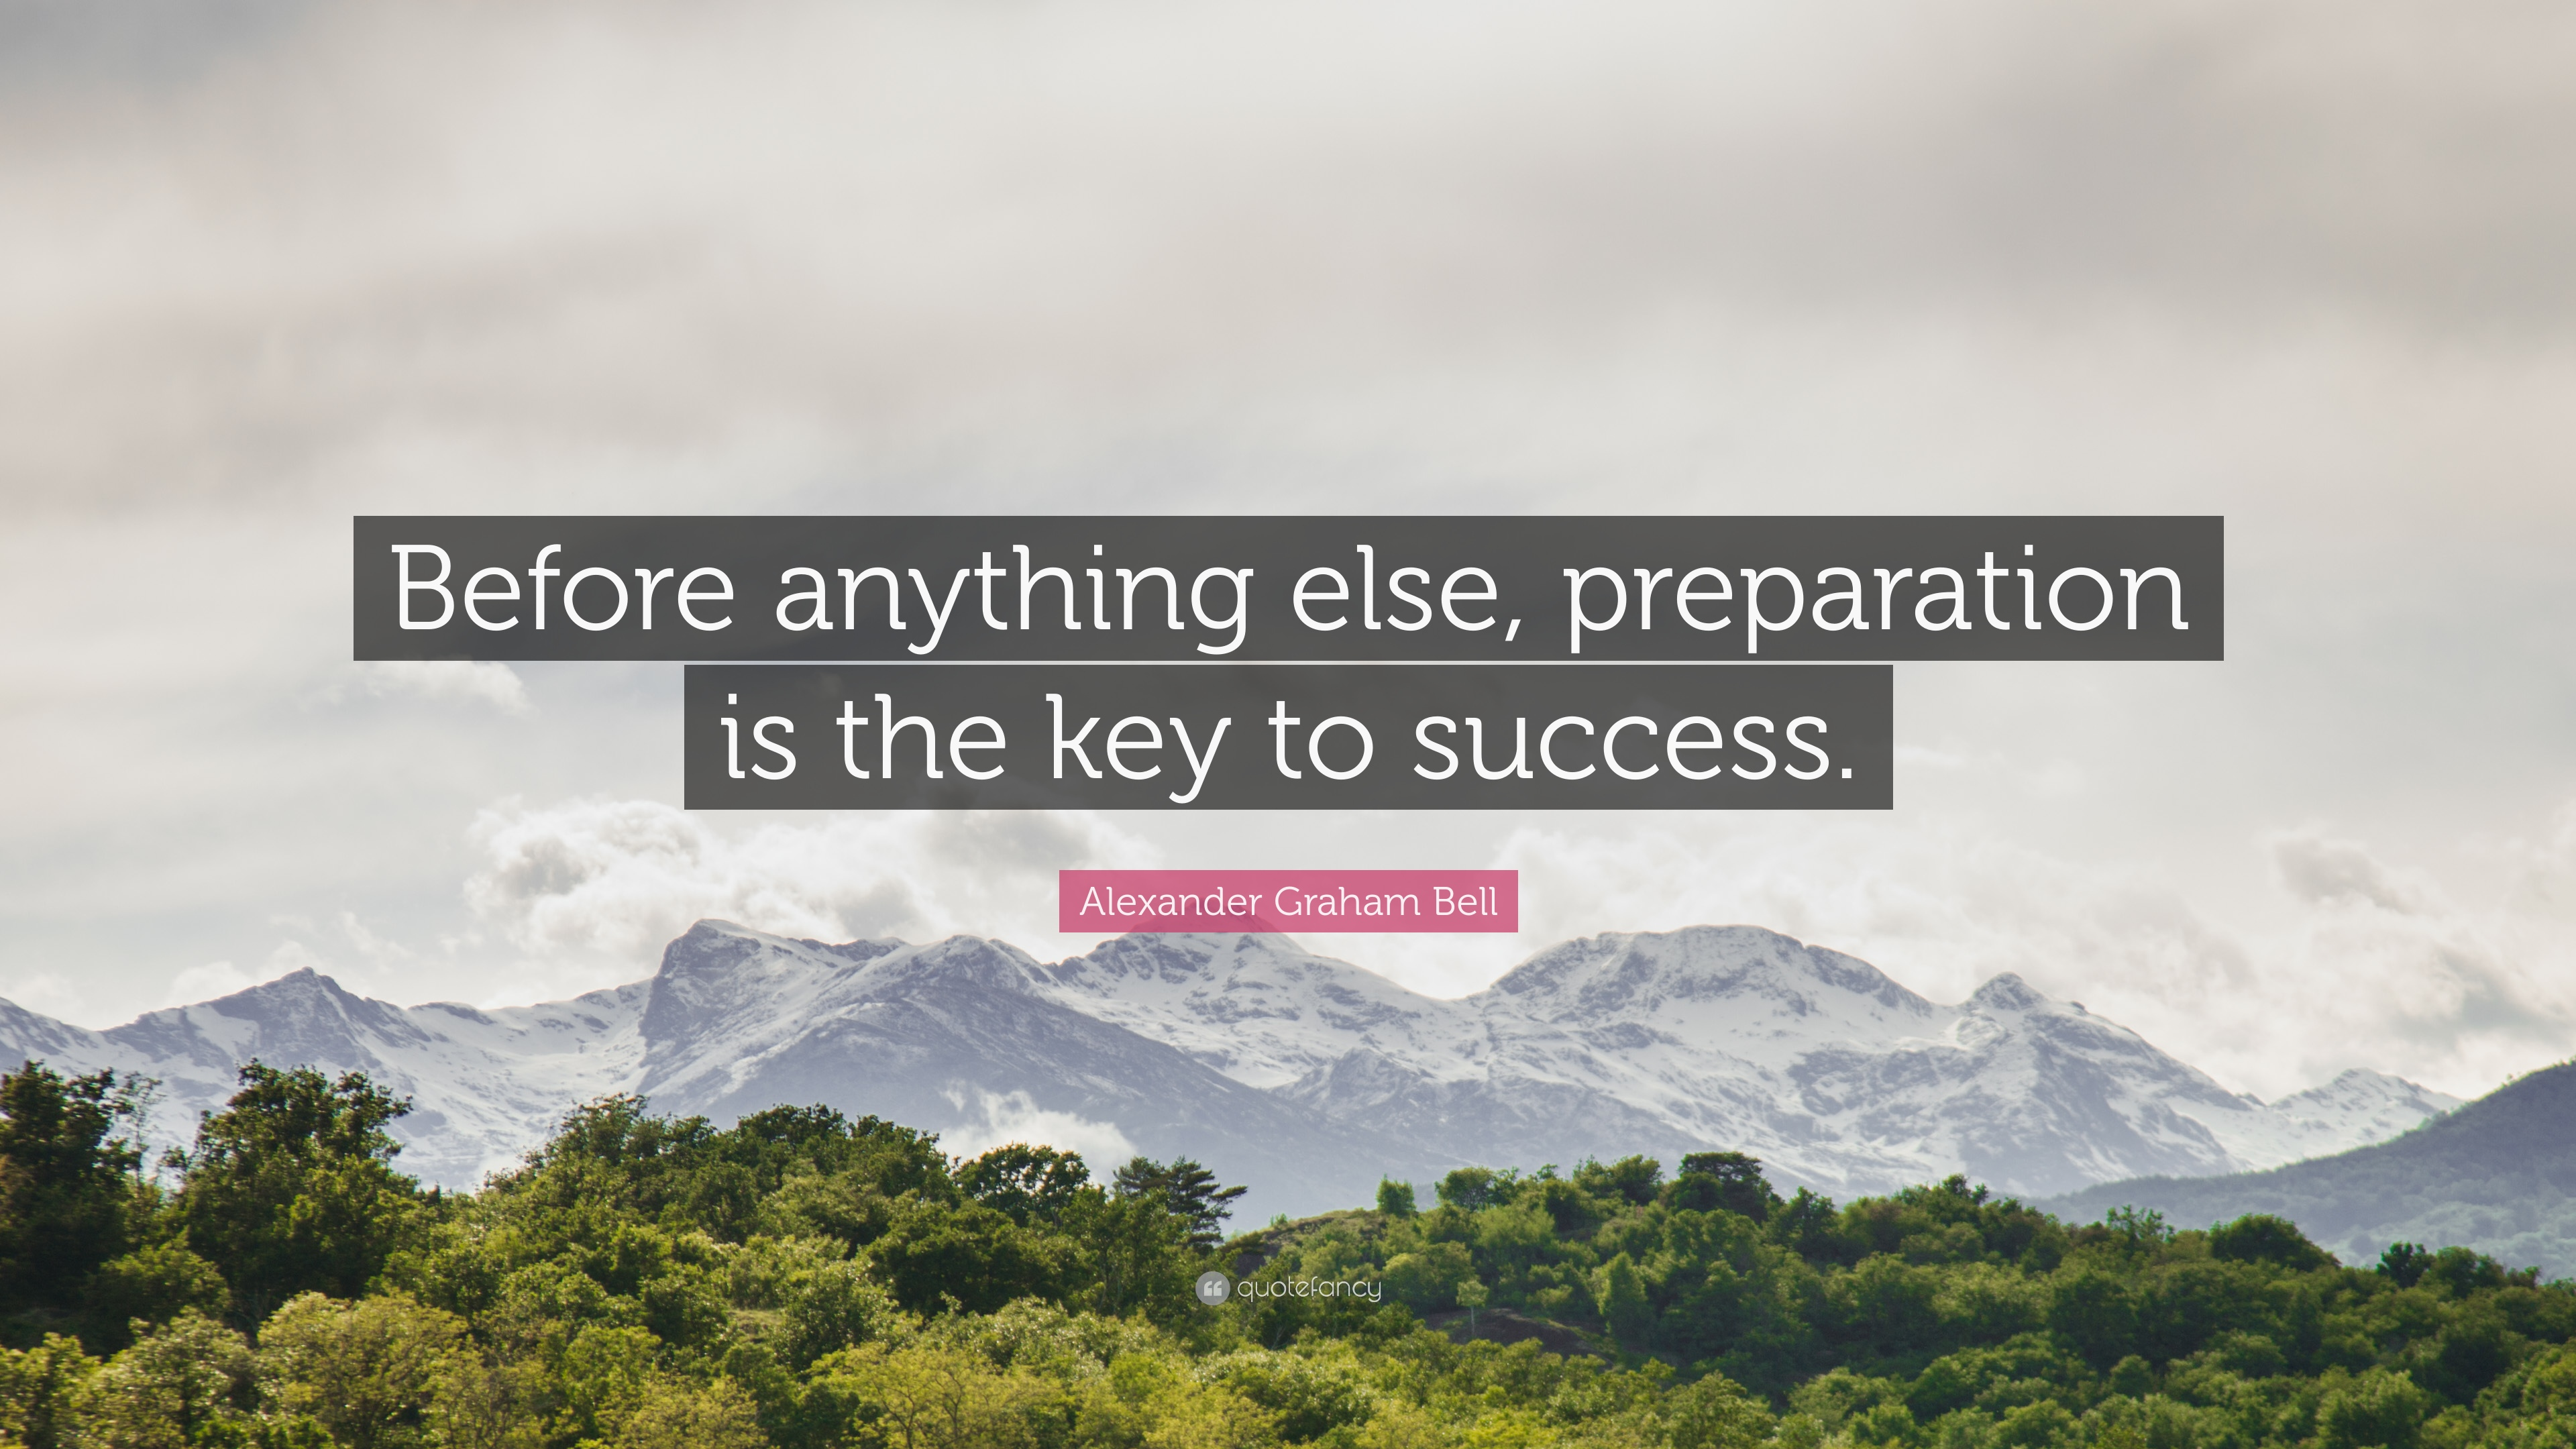 before anything else preparation is the key to success essay What mean of before anything else preparation is the key to success that is a quote by alexander graham bell, the inventor of thetelephone and many other inventions during the late 1800s-early1900s what he's trying to say is that in order to be successfulyou have to be prepared for whatever may happen.